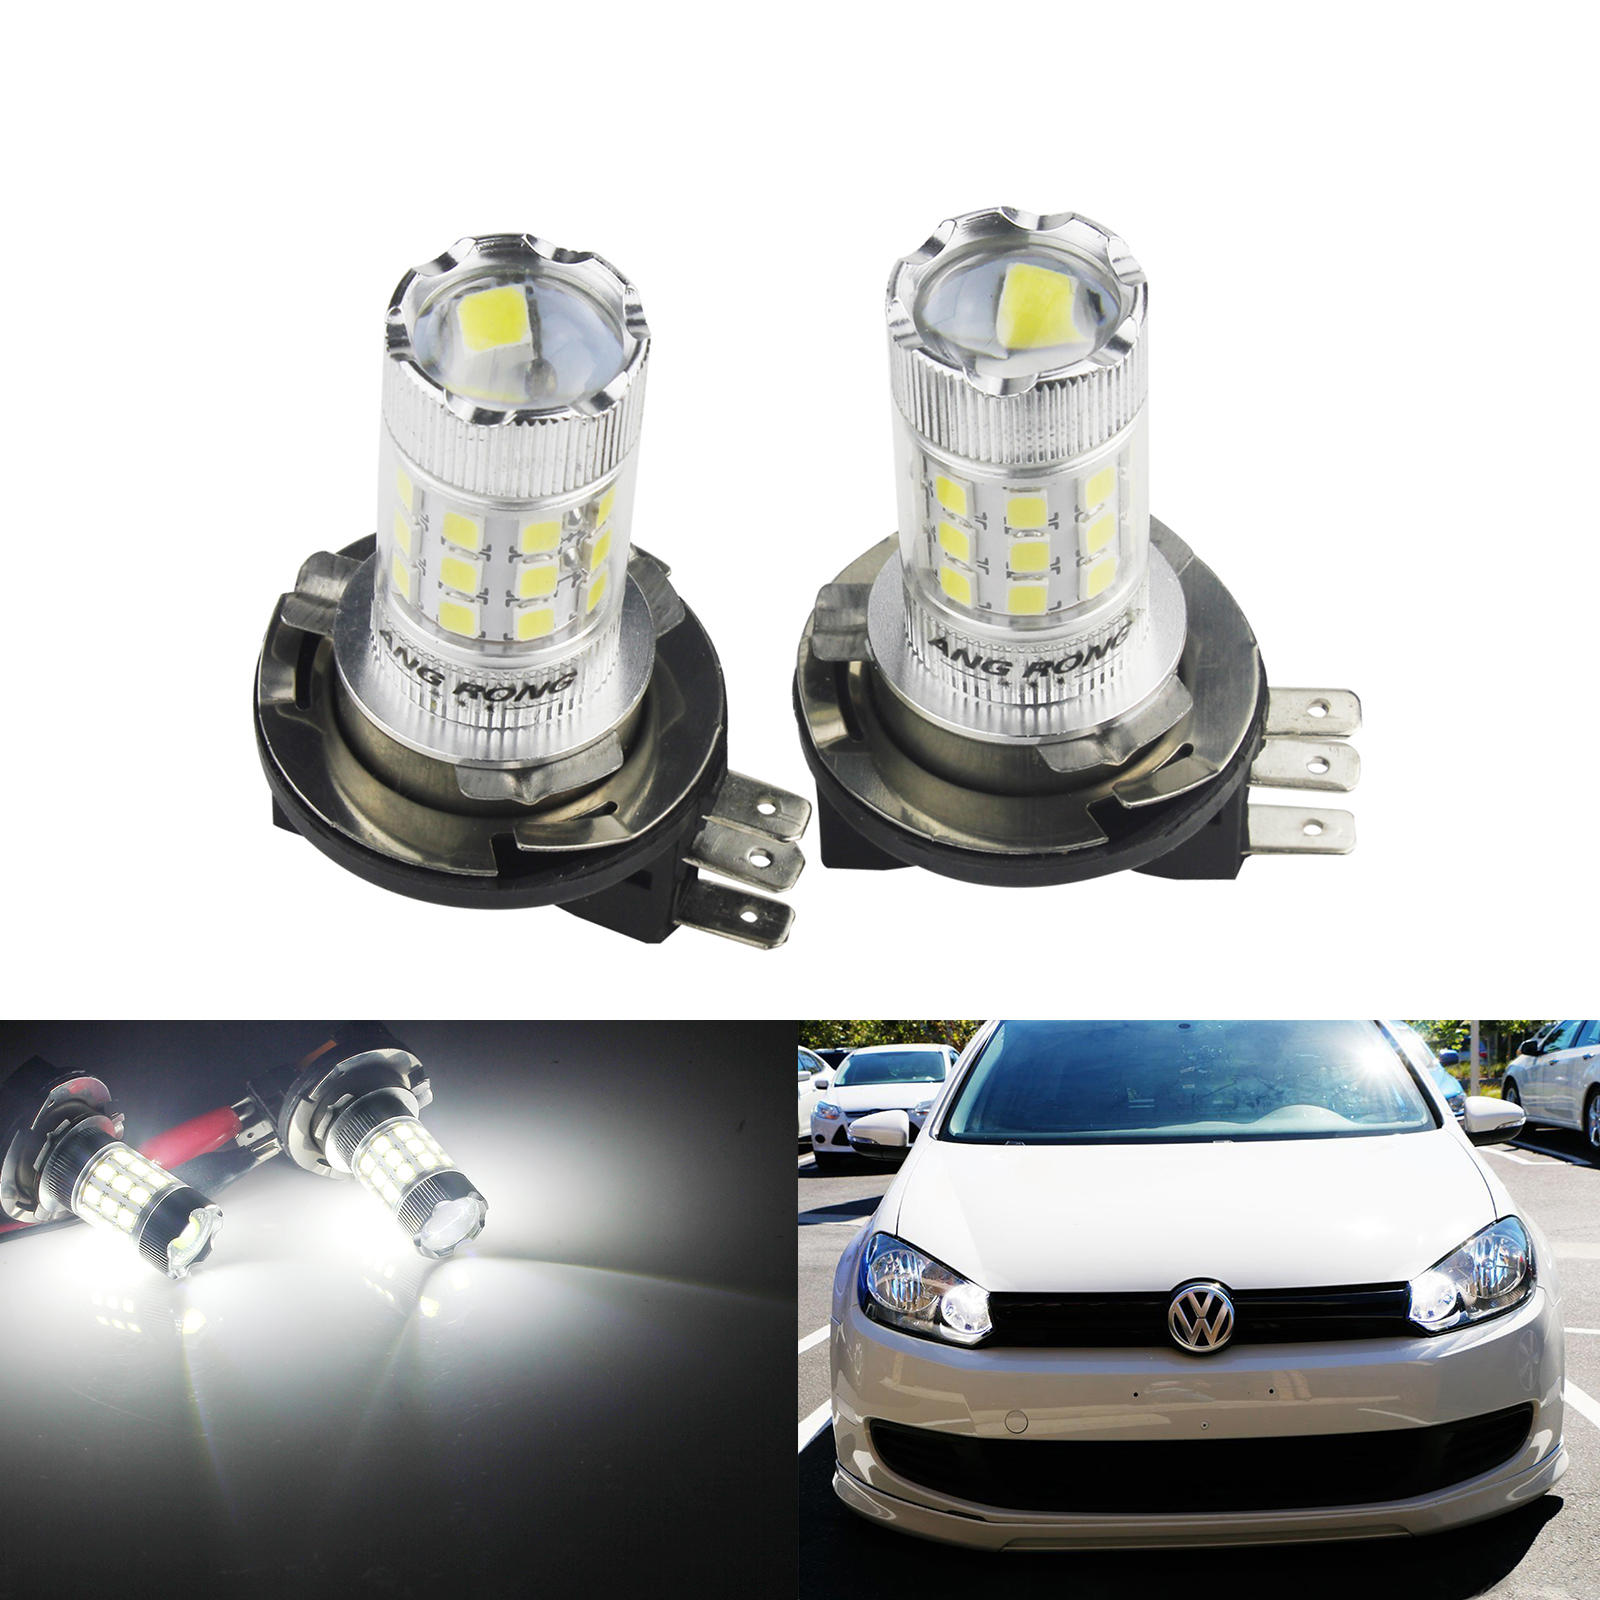 ANGRONG H15 LED <font><b>Bulb</b></font> 30W Headlight <font><b>Daytime</b></font> <font><b>Running</b></font> <font><b>Light</b></font> For VW Golf GTI MK6 MK7 Caddy Audi Q7 Mercedes Benz <font><b>BMW</b></font> F22 image